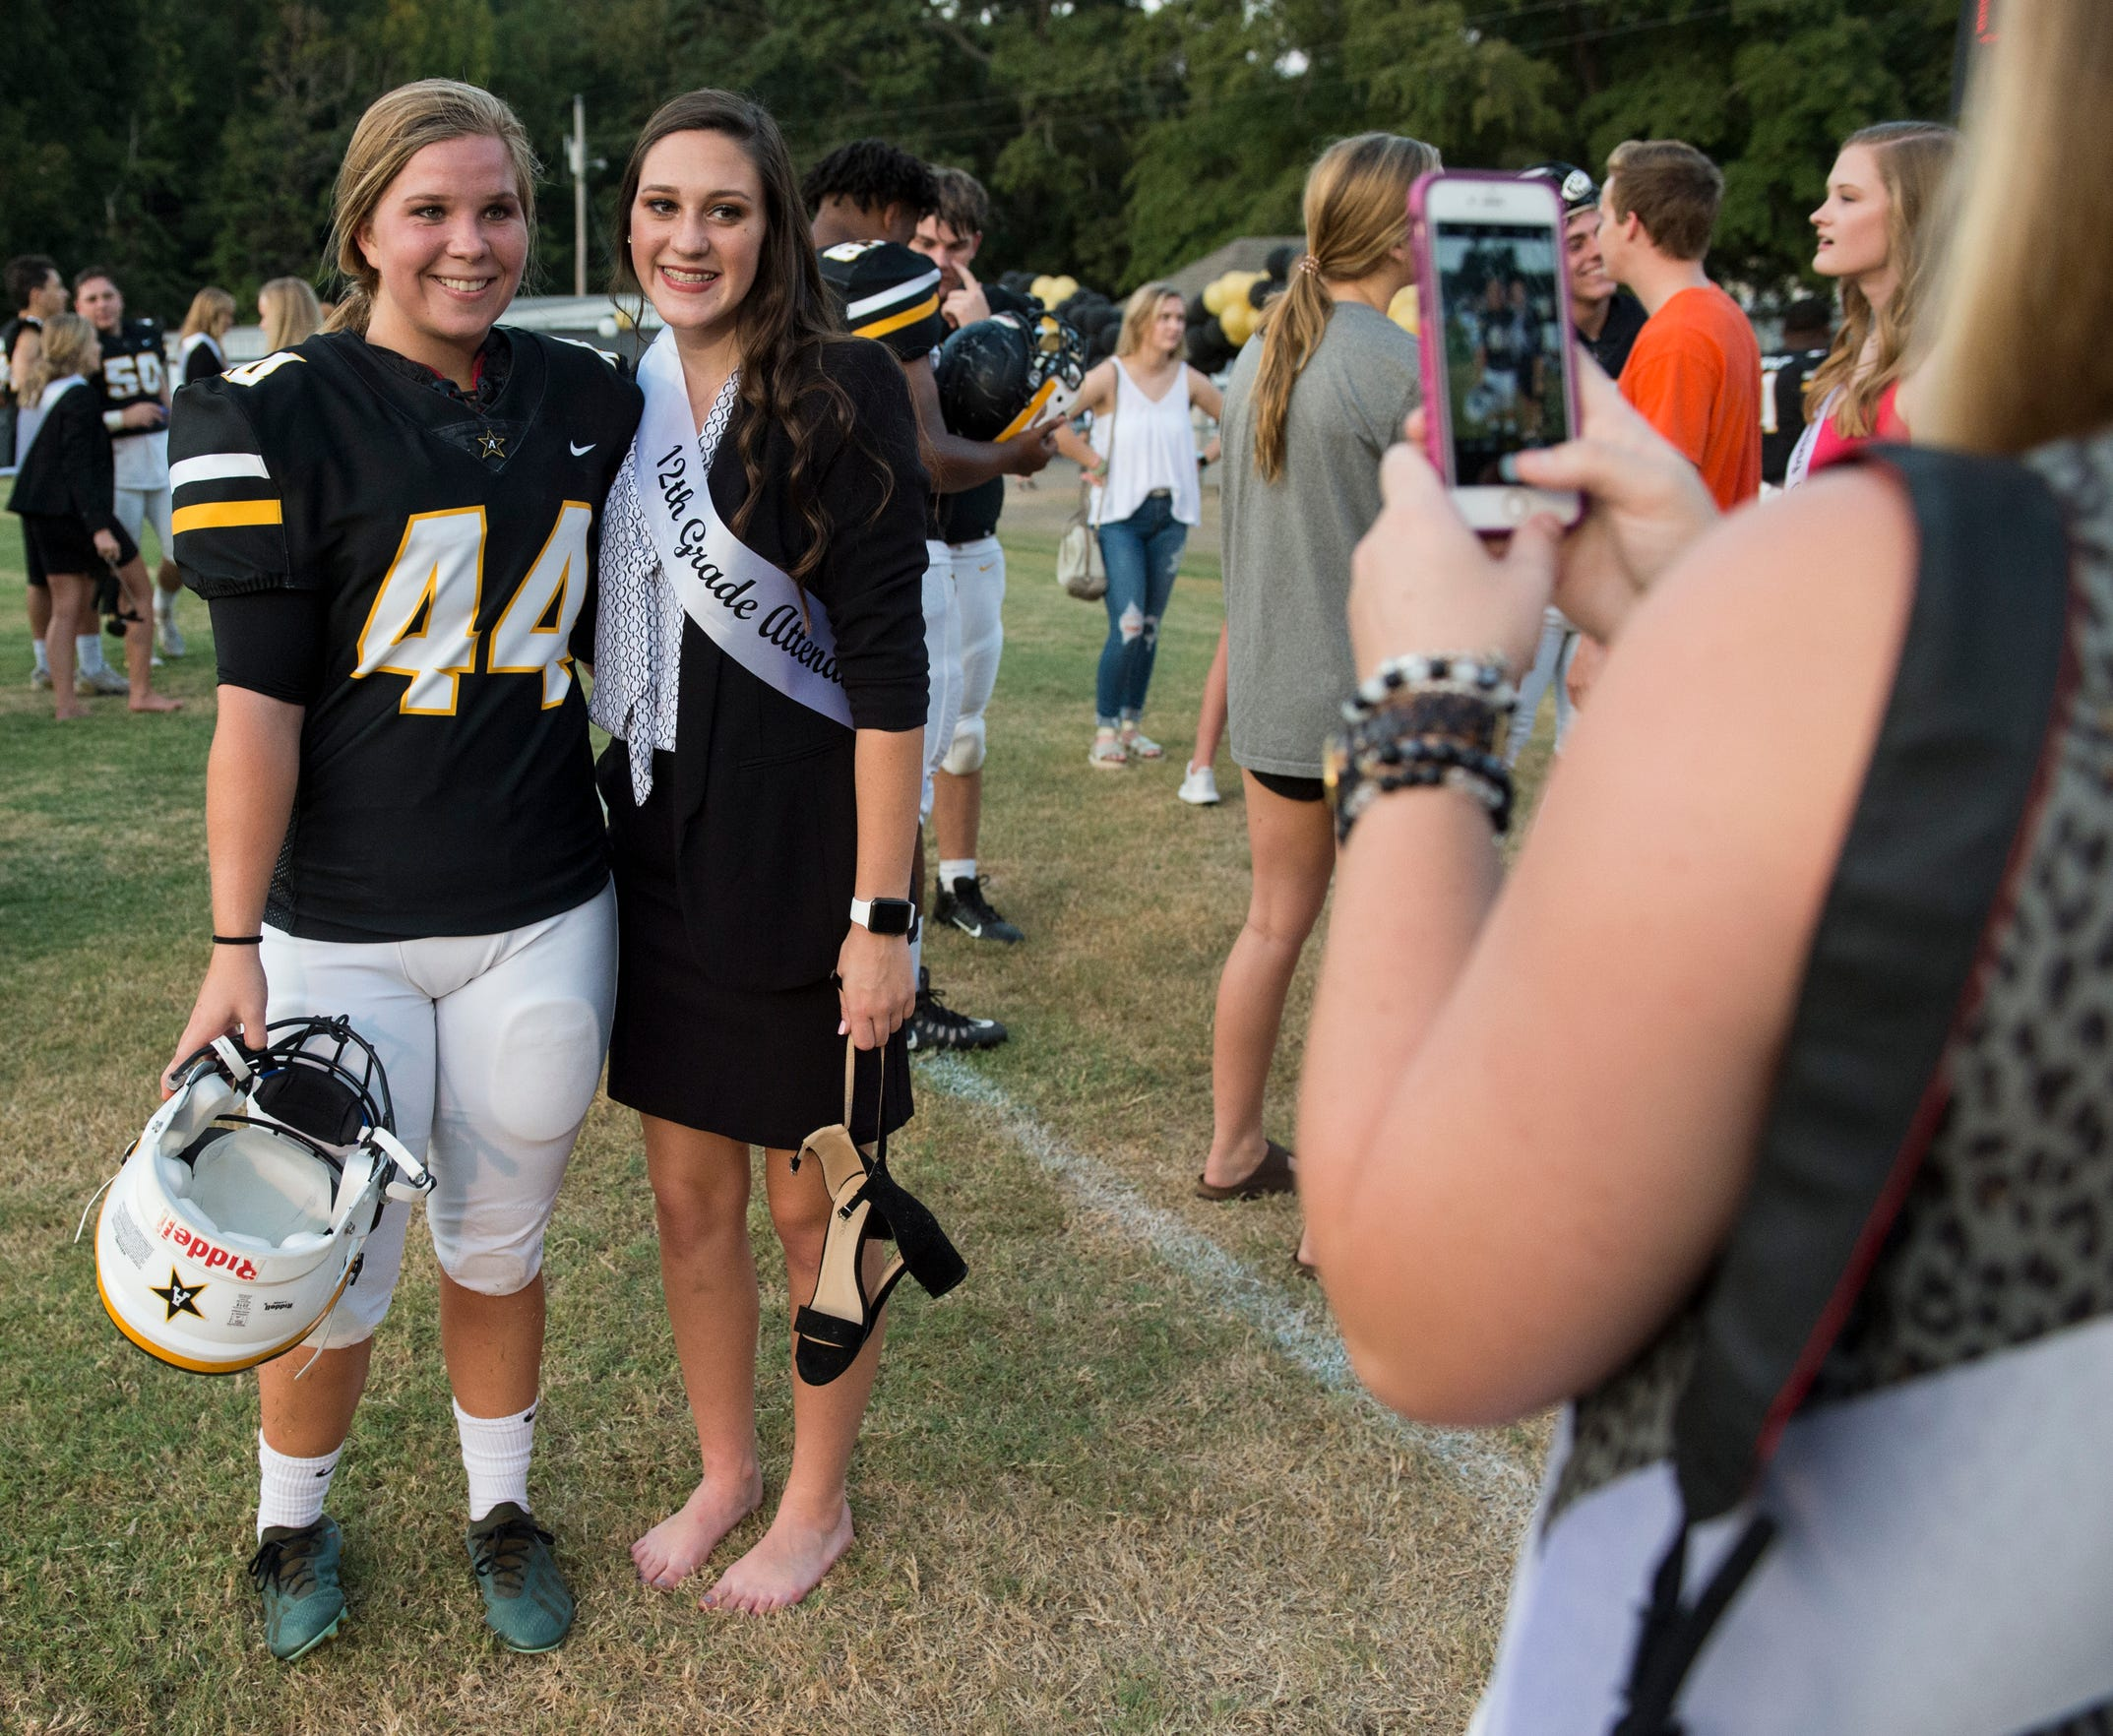 Autauga's Emma Wendland (44) takes a picture with a fellow homecoming attendant at Autauga Academy in Prattville, Ala., on Friday, Sept. 27, 2019. Autauga Academy defeated Tuscaloosa Academy 40-16.